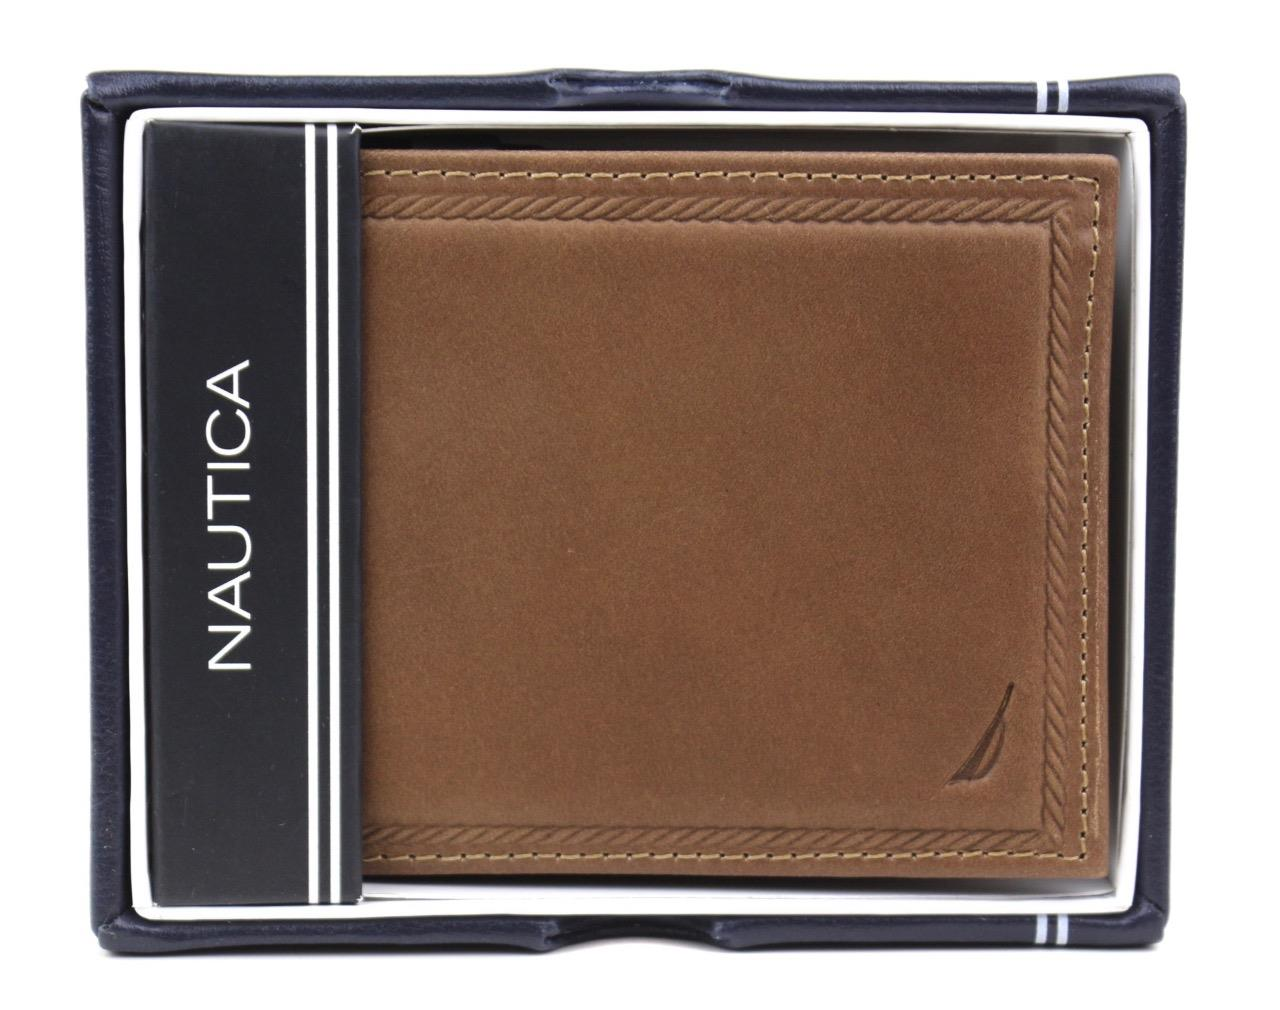 Nautica-Men-039-s-Genuine-Vintage-Leather-Credit-Card-ID-Billfold-Passcase-Wallet thumbnail 23